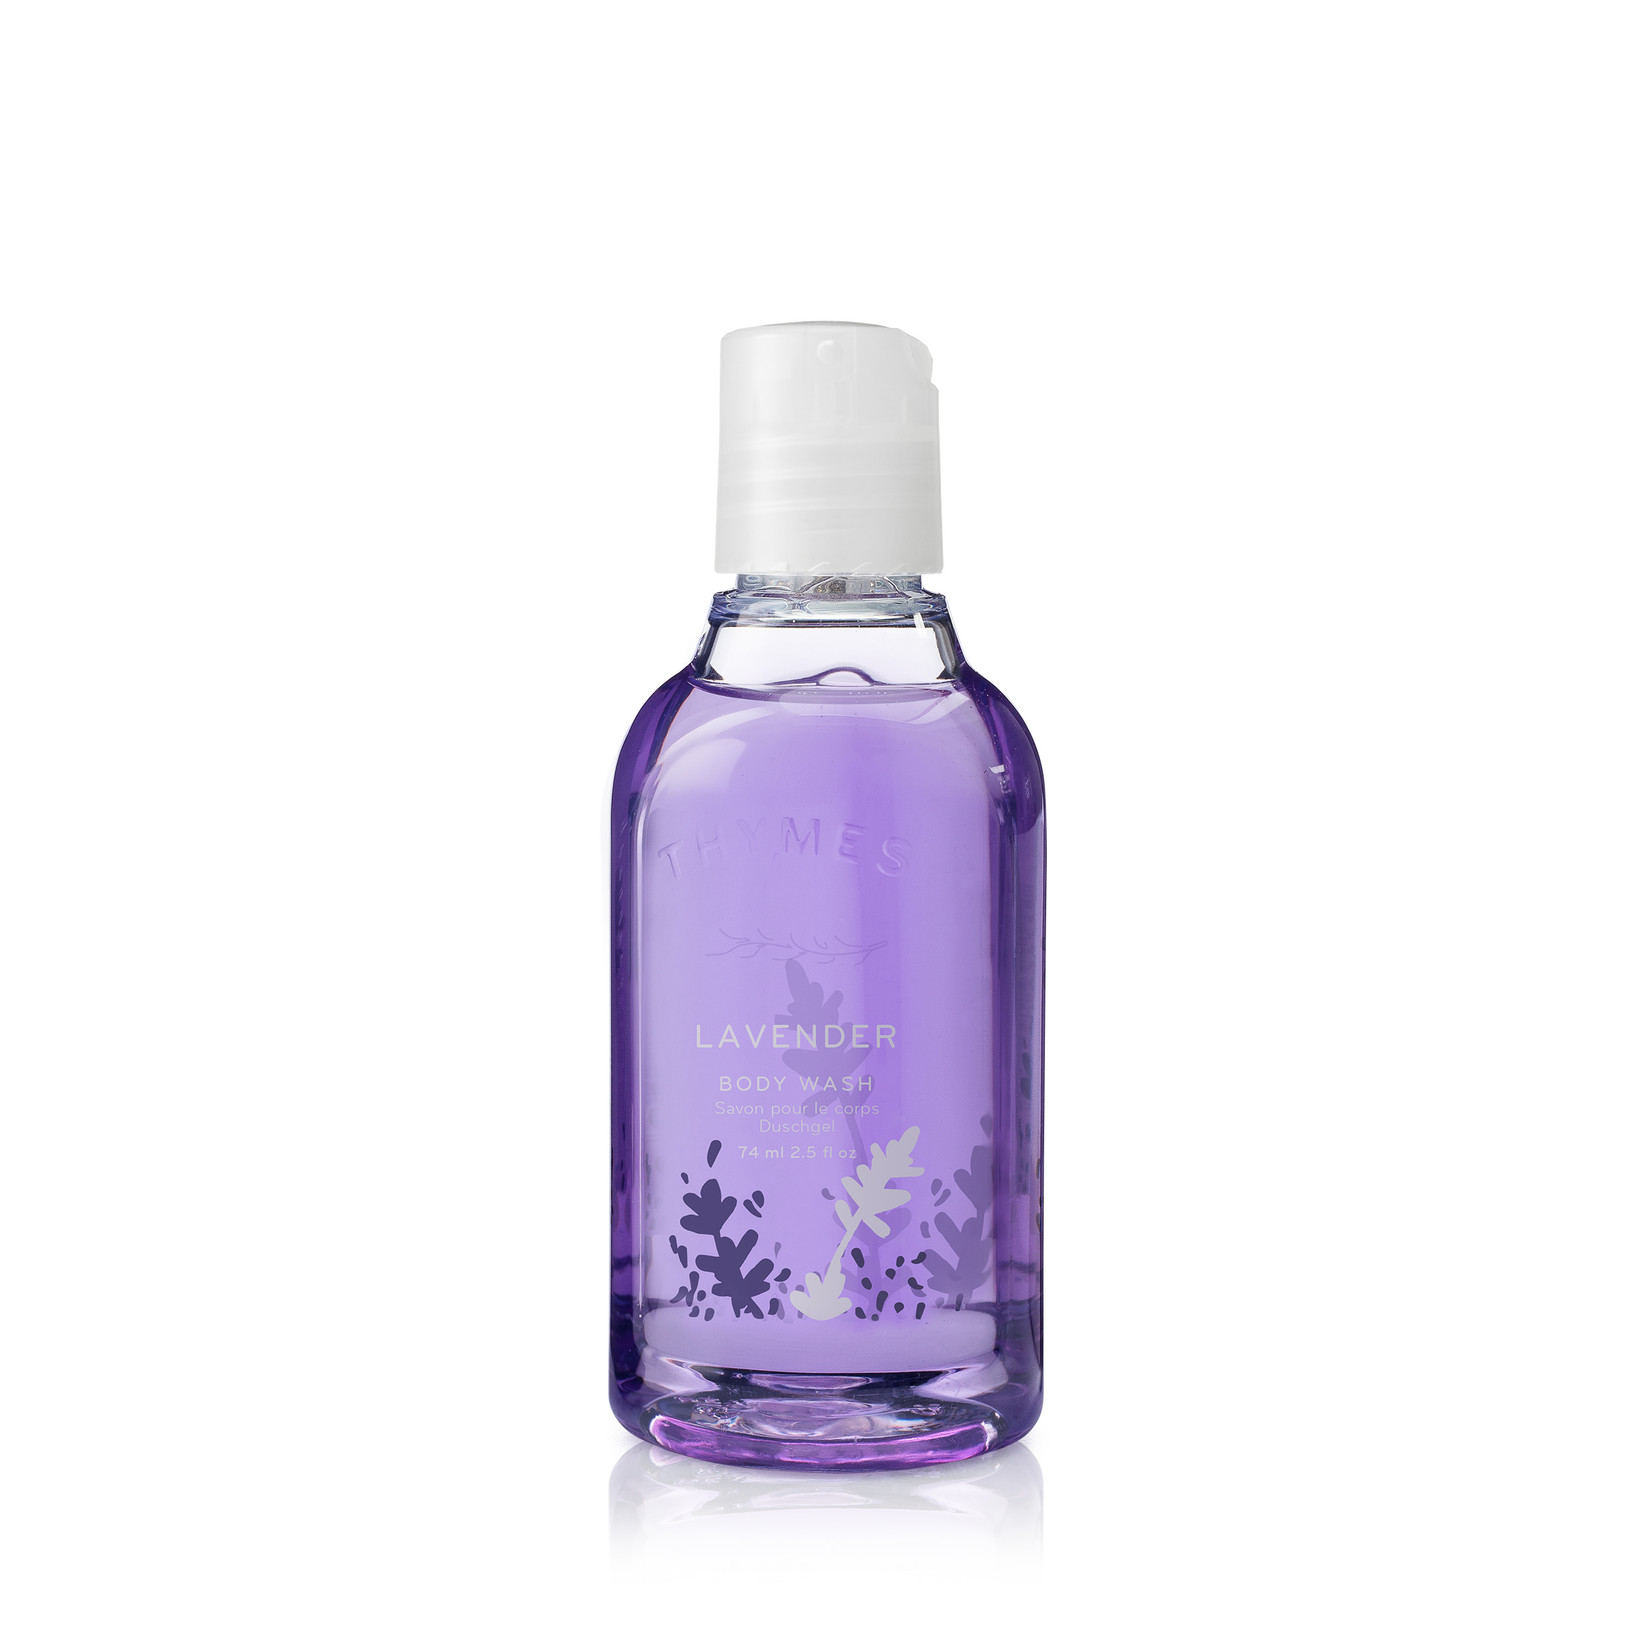 Thymes Travel Size Body Wash